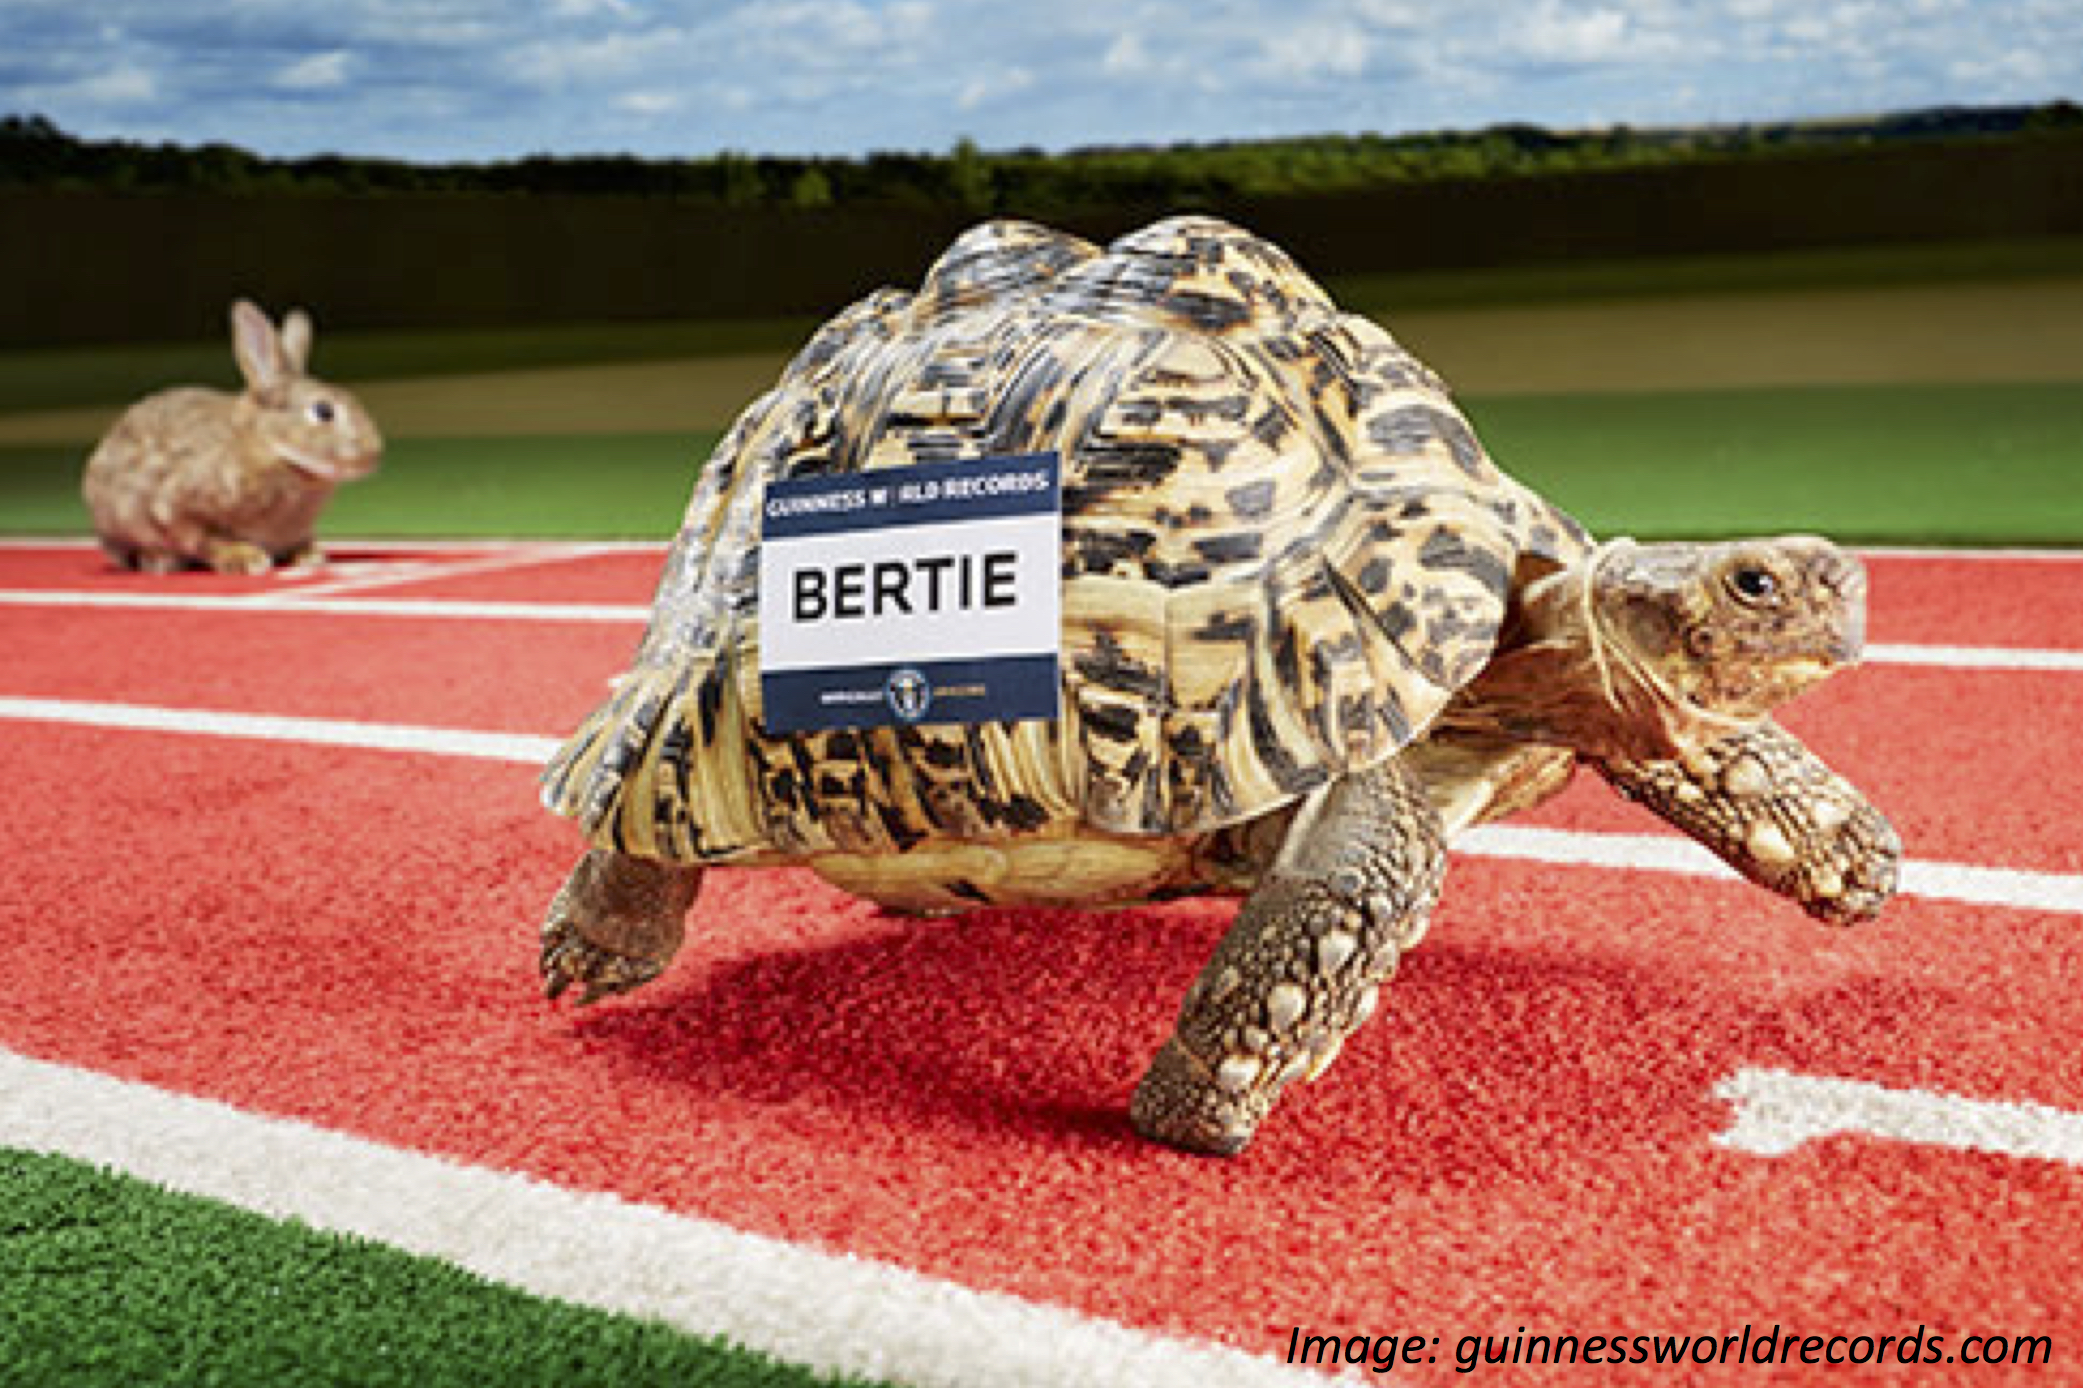 The Tortoise That (Almost) Beats the Hare